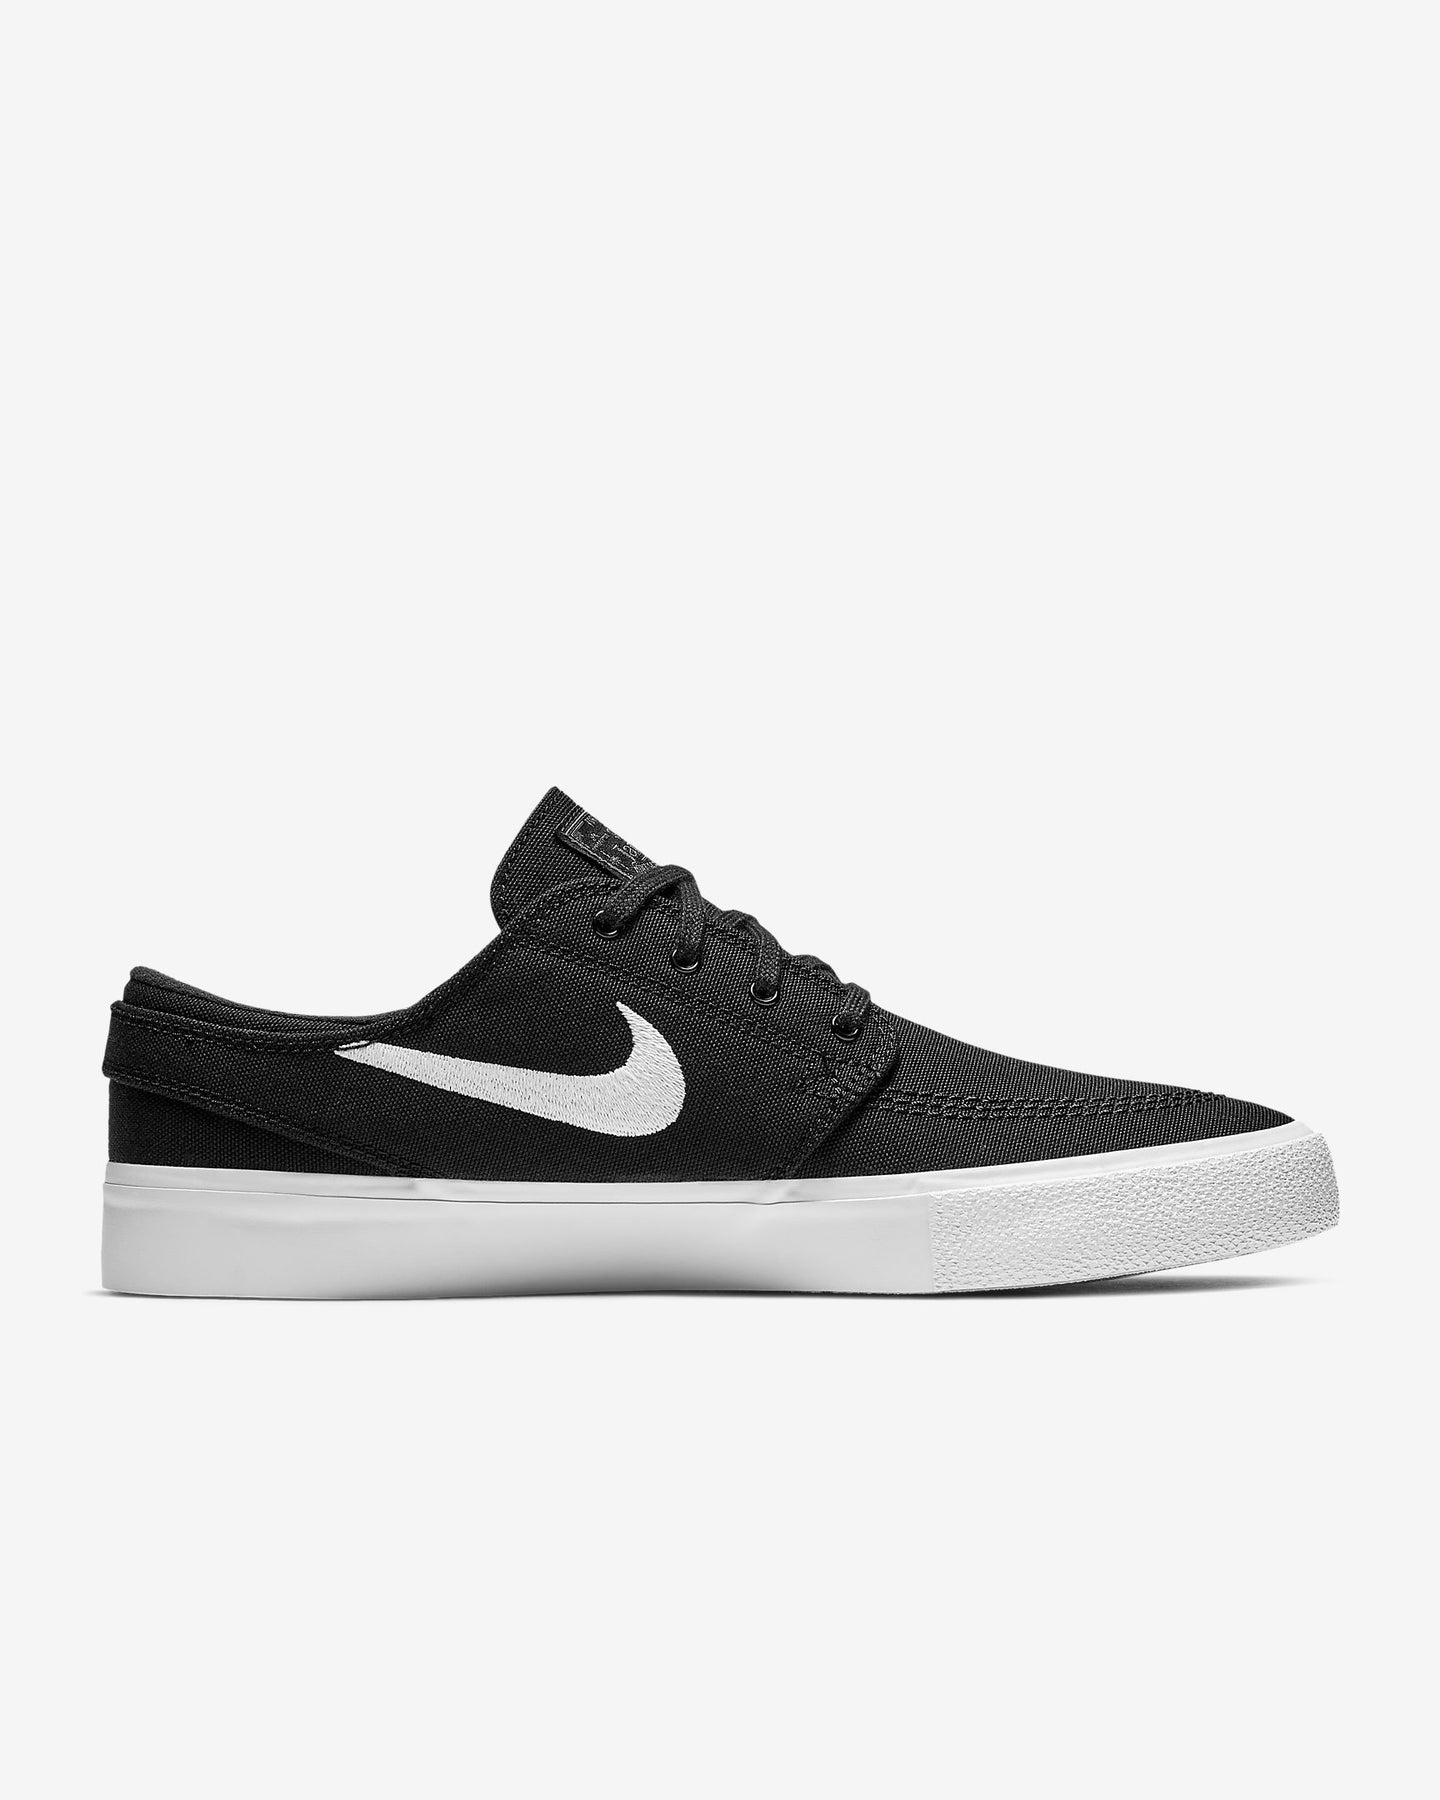 Zapatillas Nike SB Zoom Stefan Janoski Canvas RM